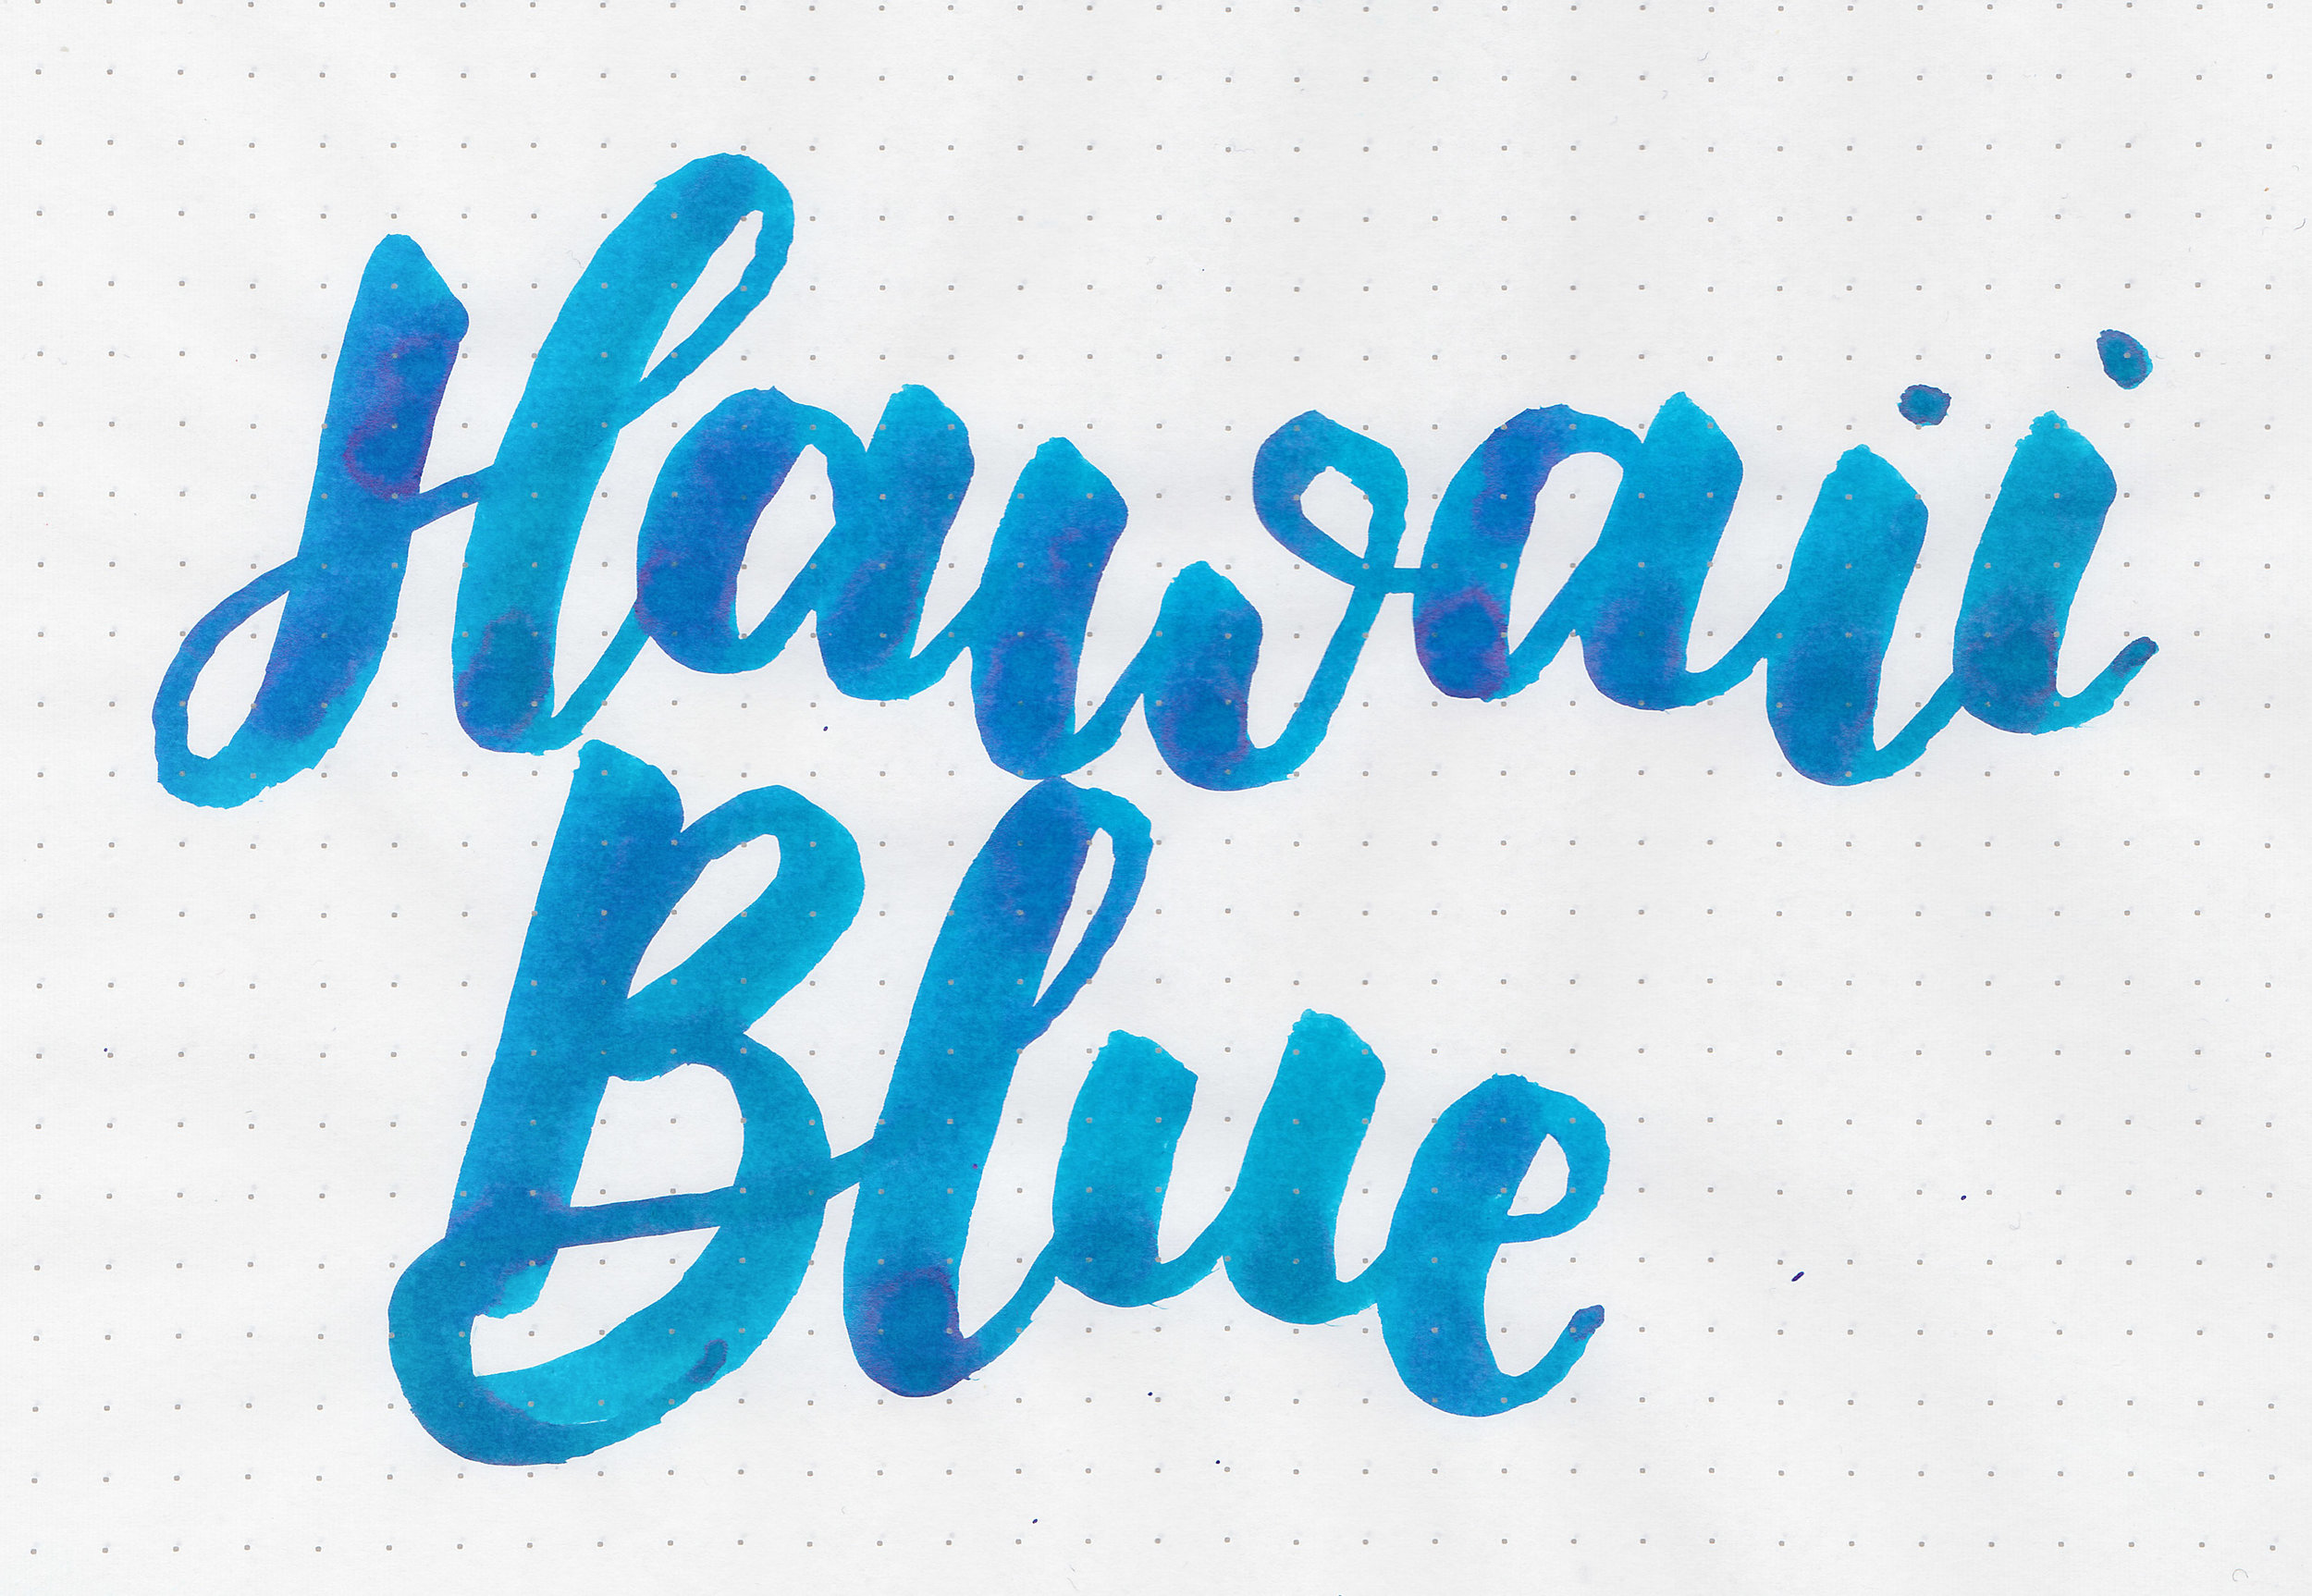 kwz-hawaii-blue-2.jpg